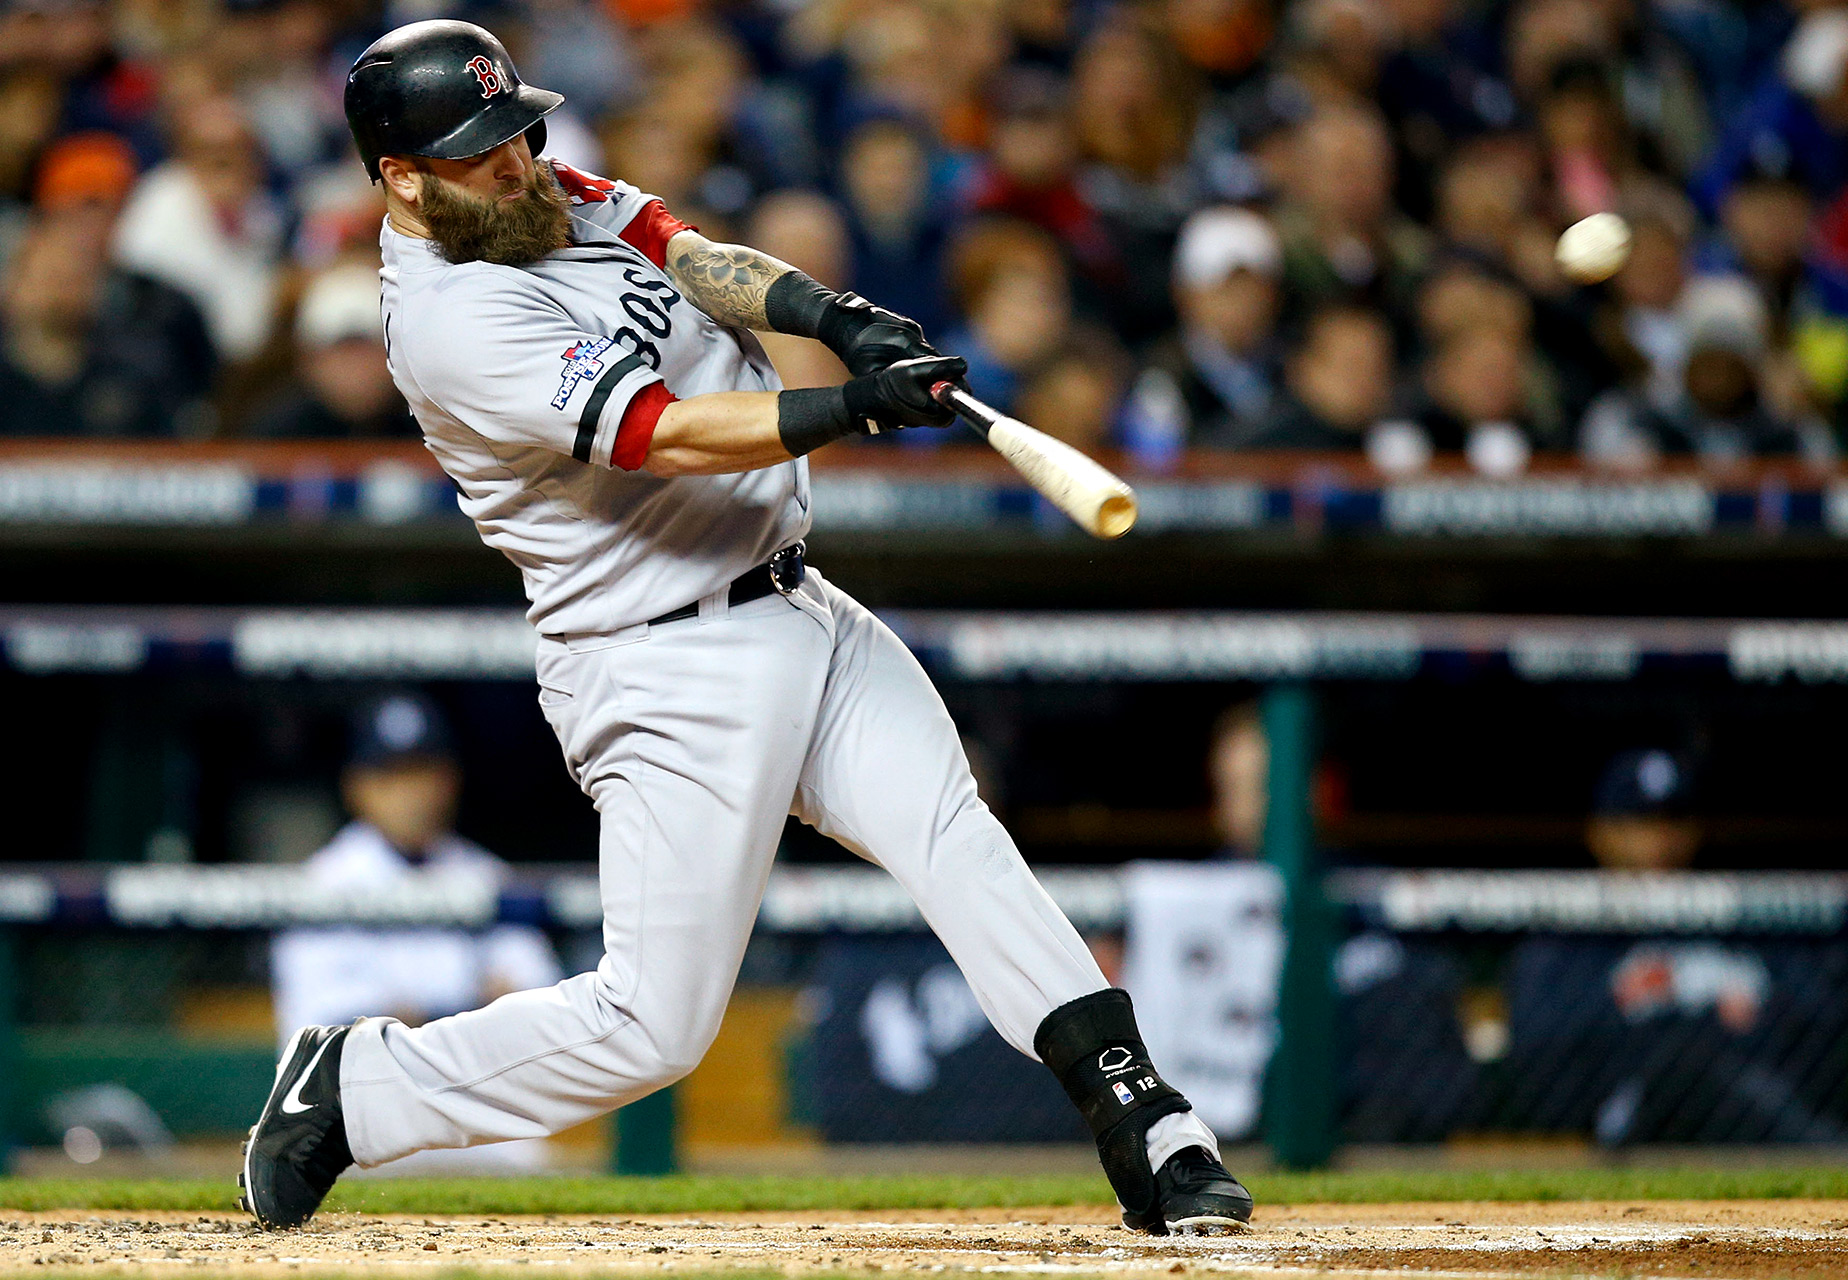 Best raw power: Mike Napoli